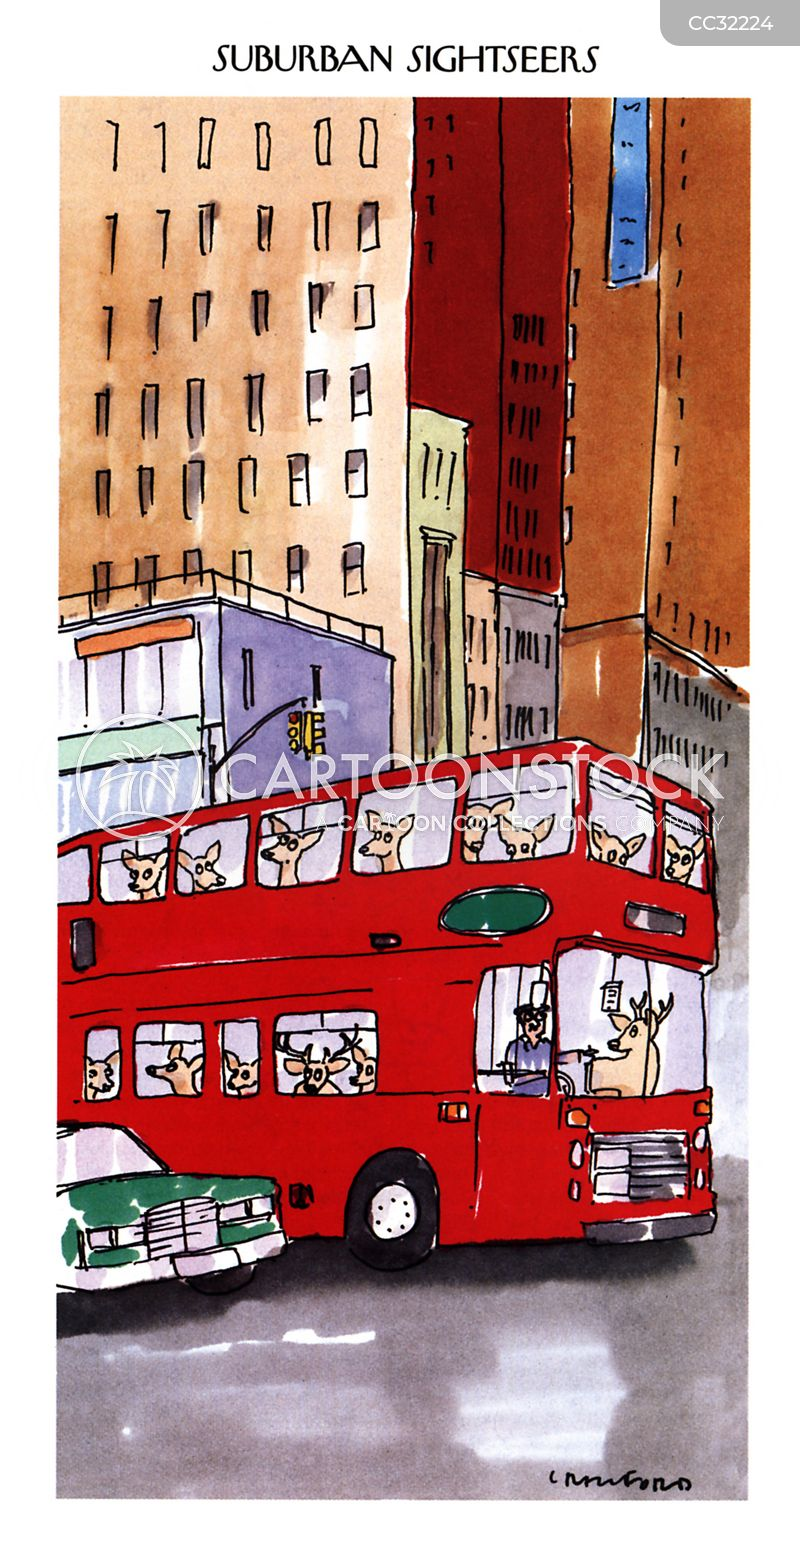 tourbus cartoon